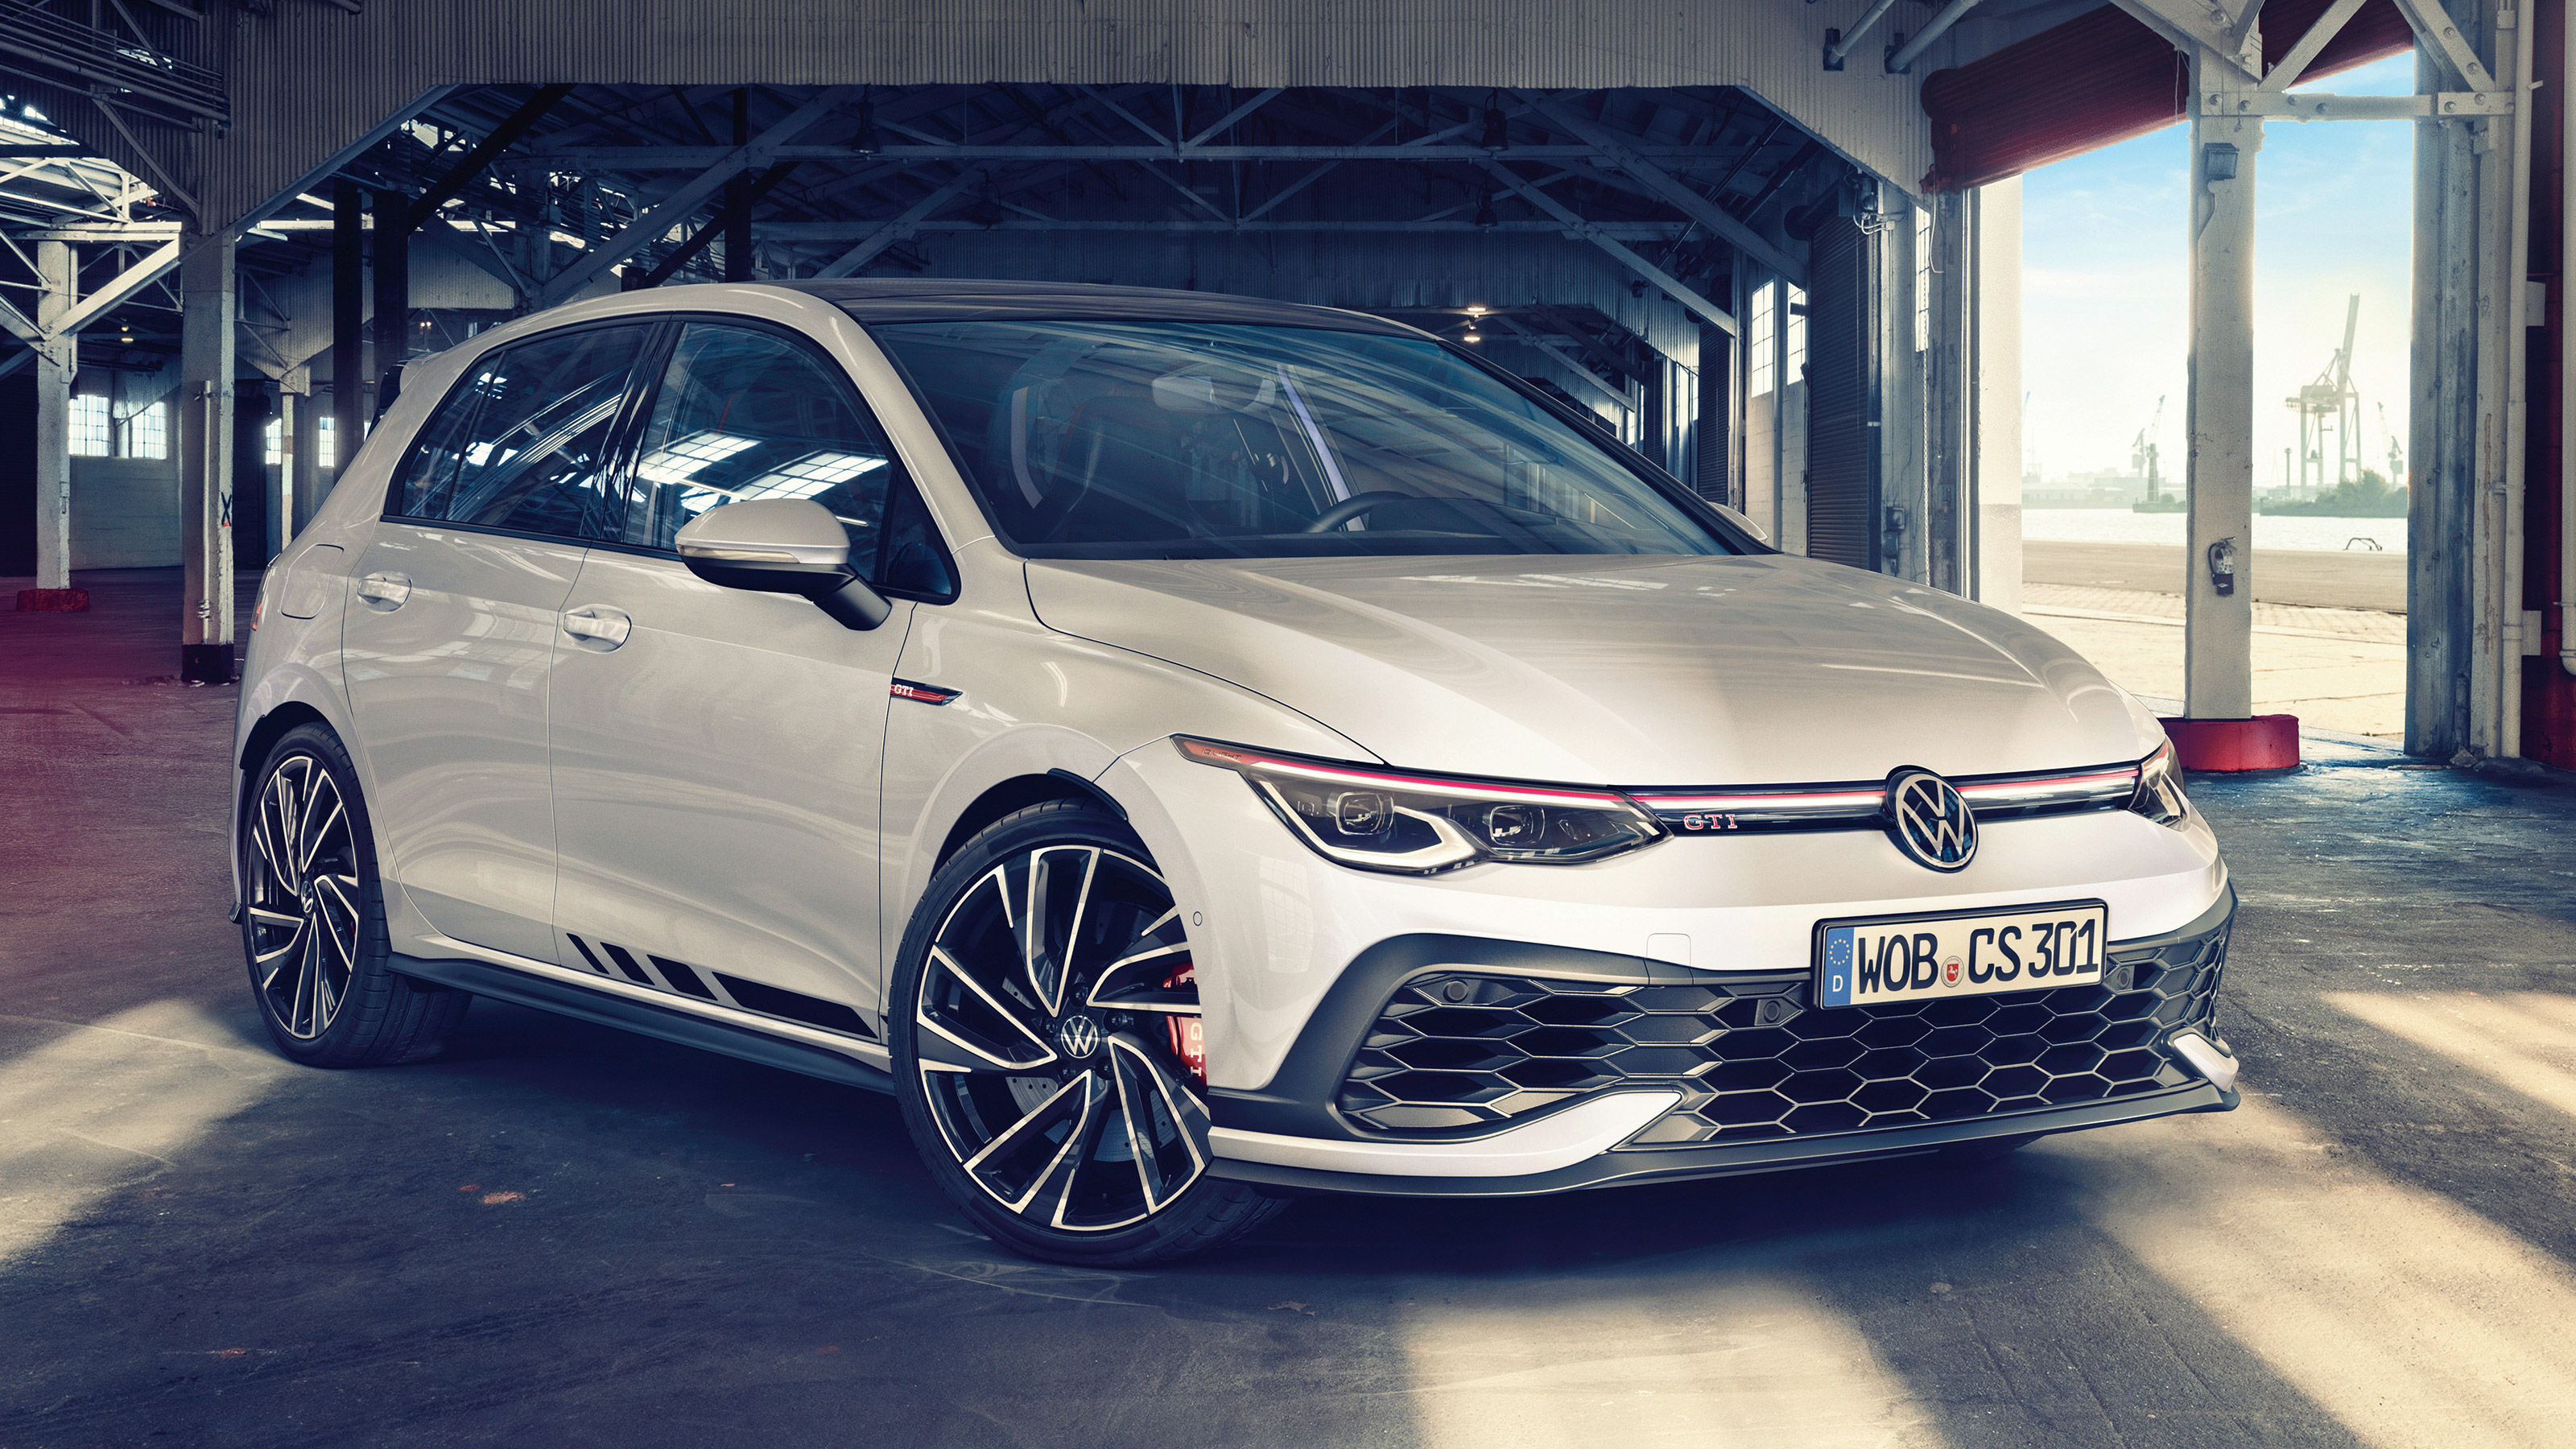 New Volkswagen Golf Gti Clubsport Priced From 37 215 In The Uk Evo